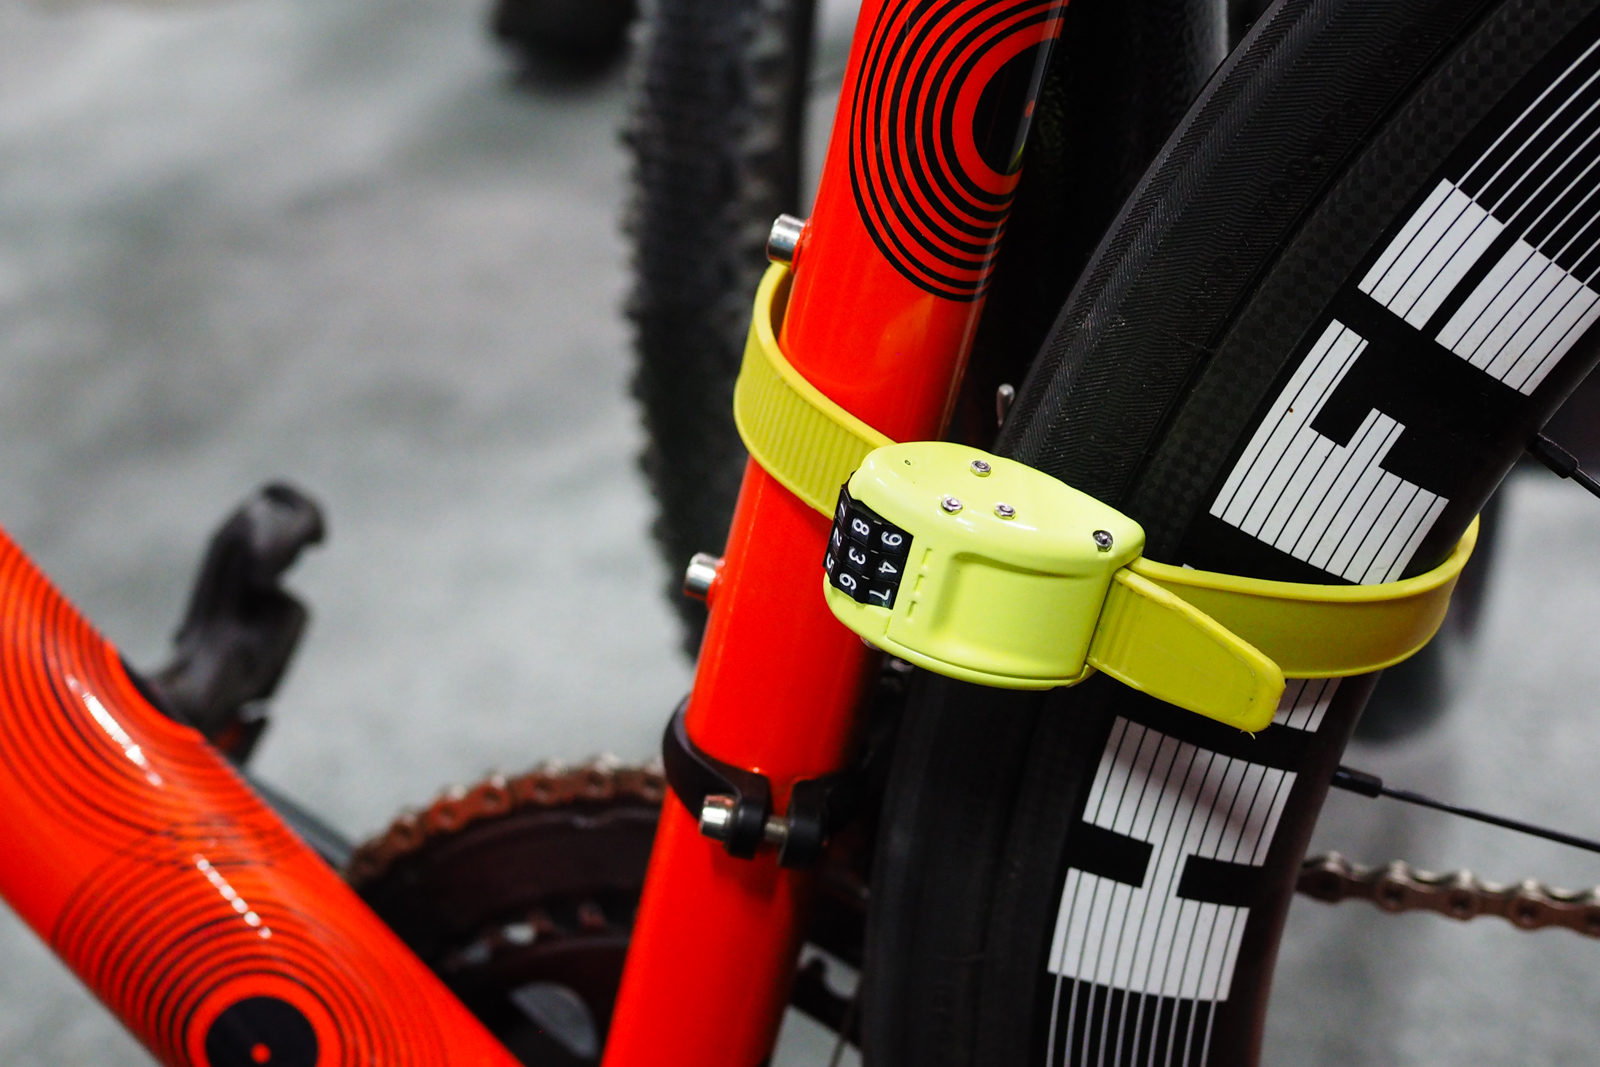 The Ottolock is a fresh take on portable bike locks with a multi-layer metal and fiber band that supposedly offers good security while still rolling up to fit in your jersey pocket. Photo: James Huang